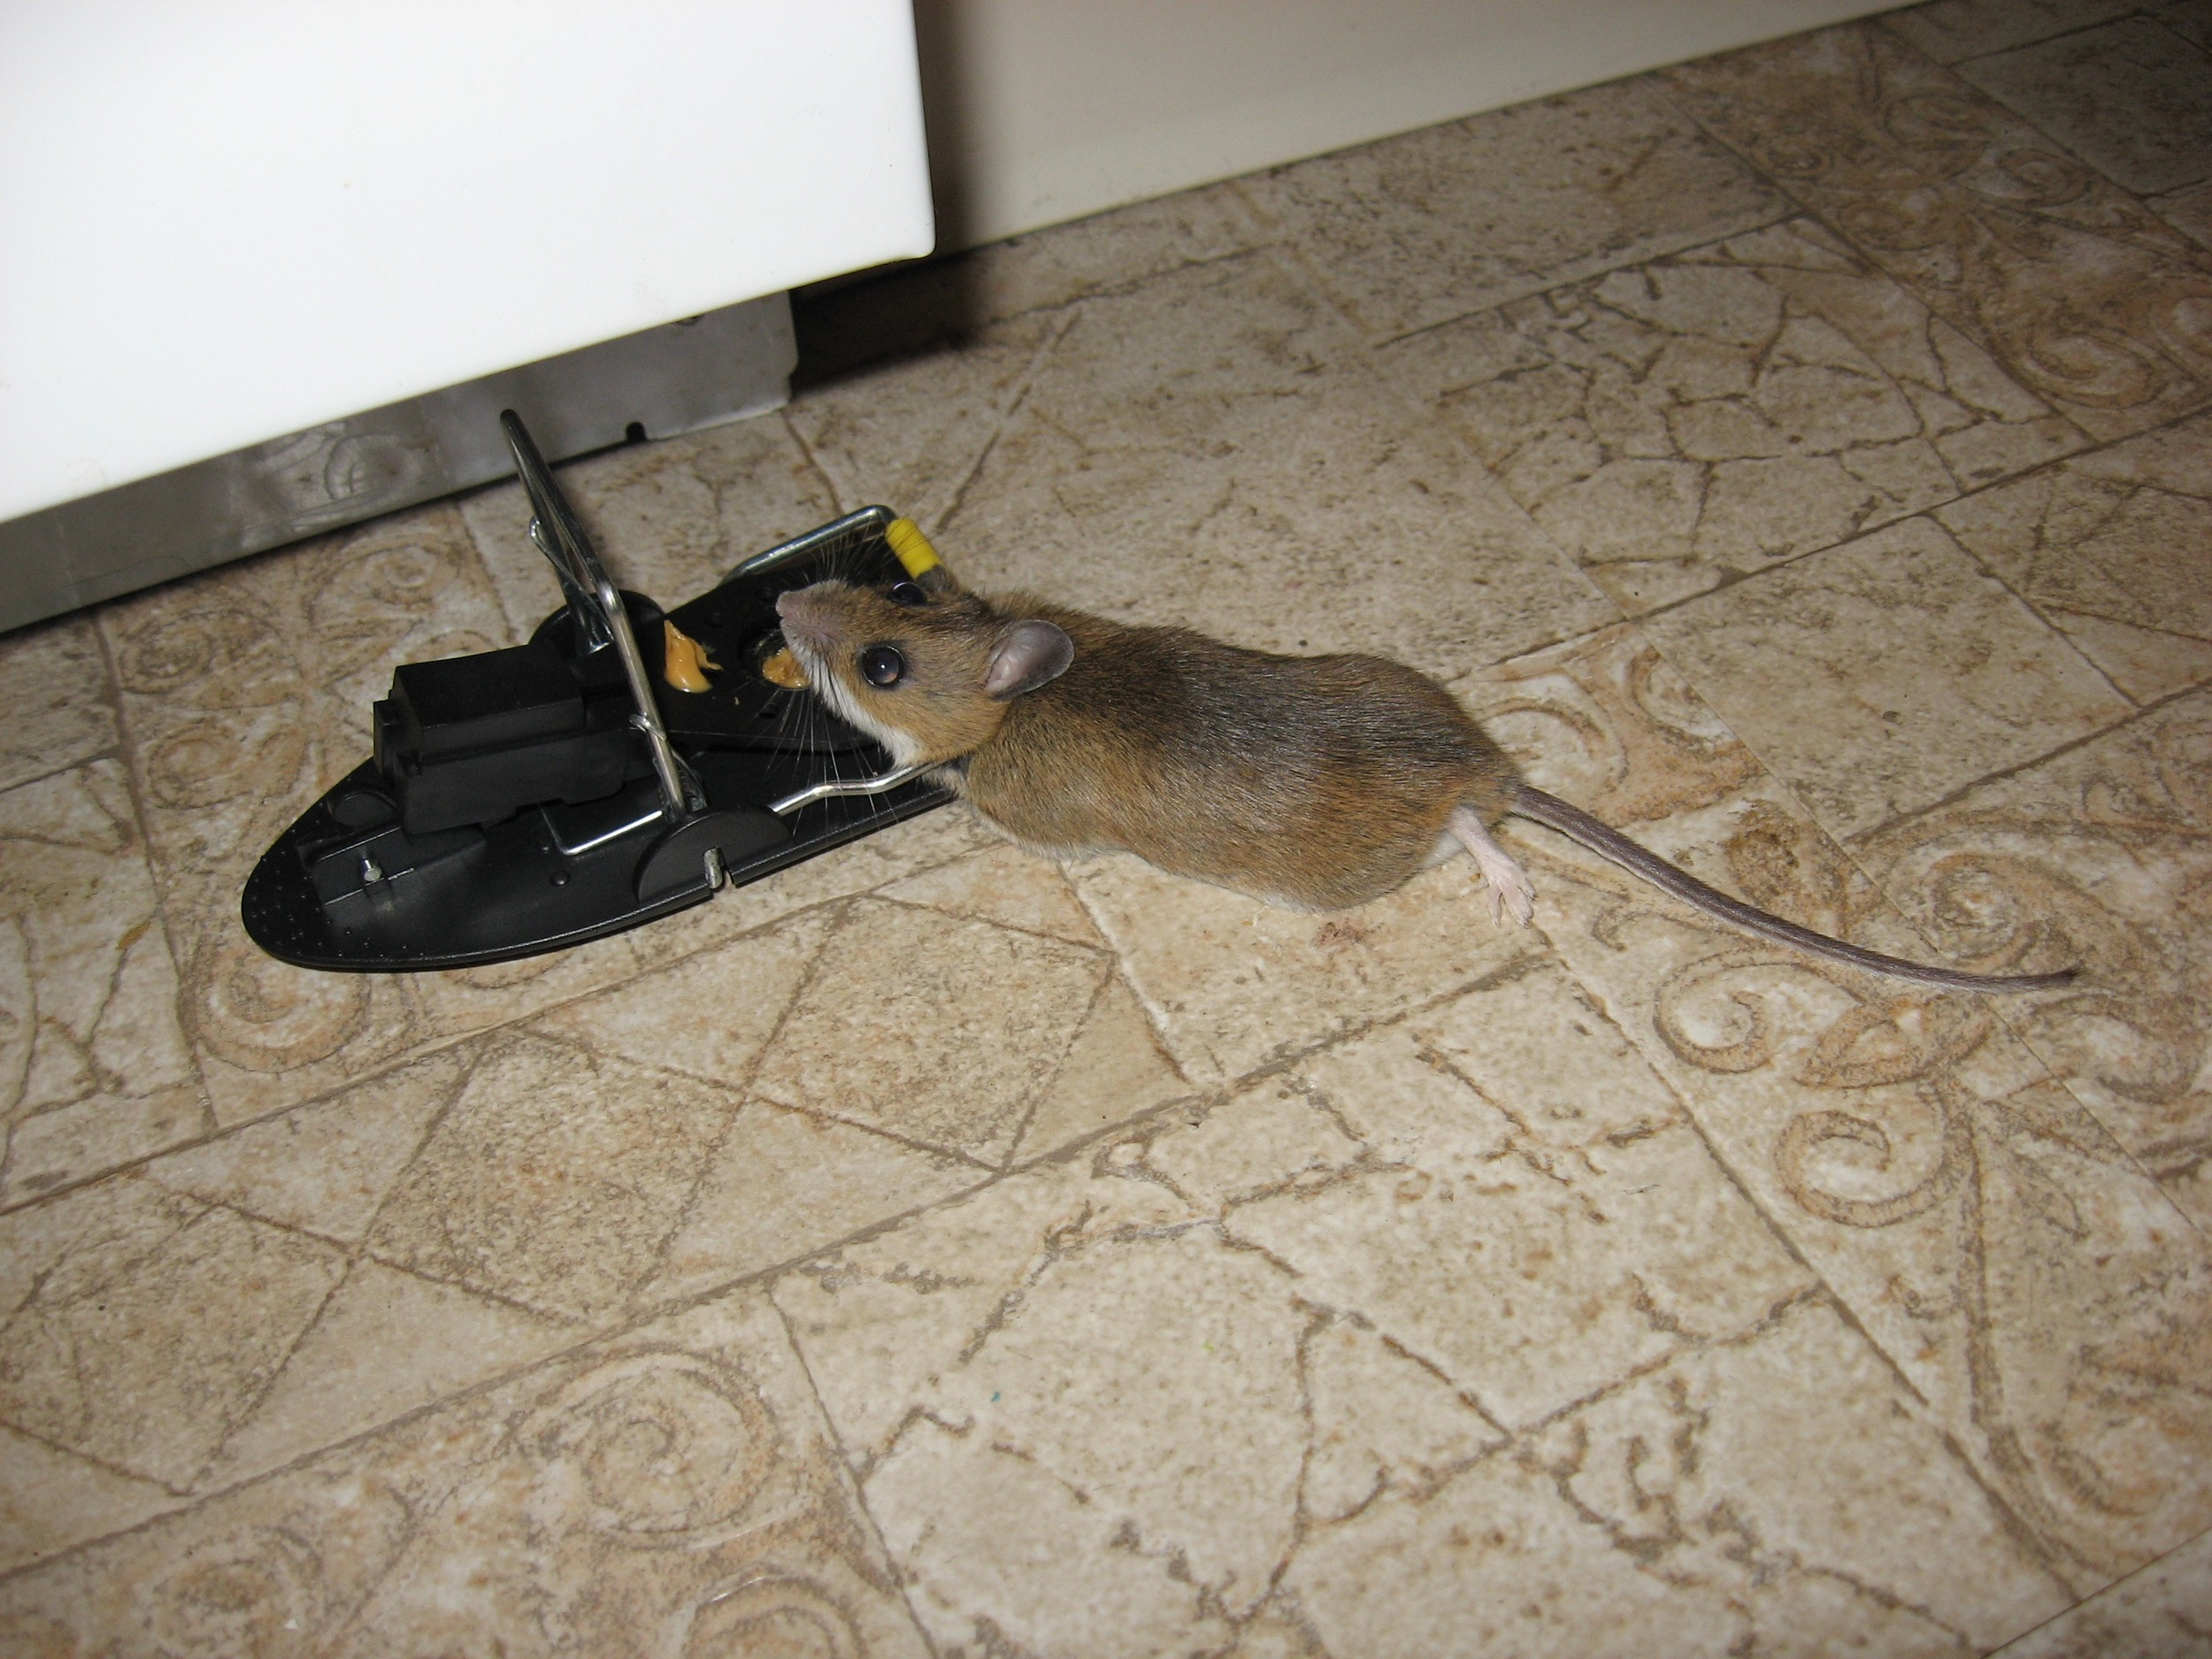 Bacon-loving dead mouse!